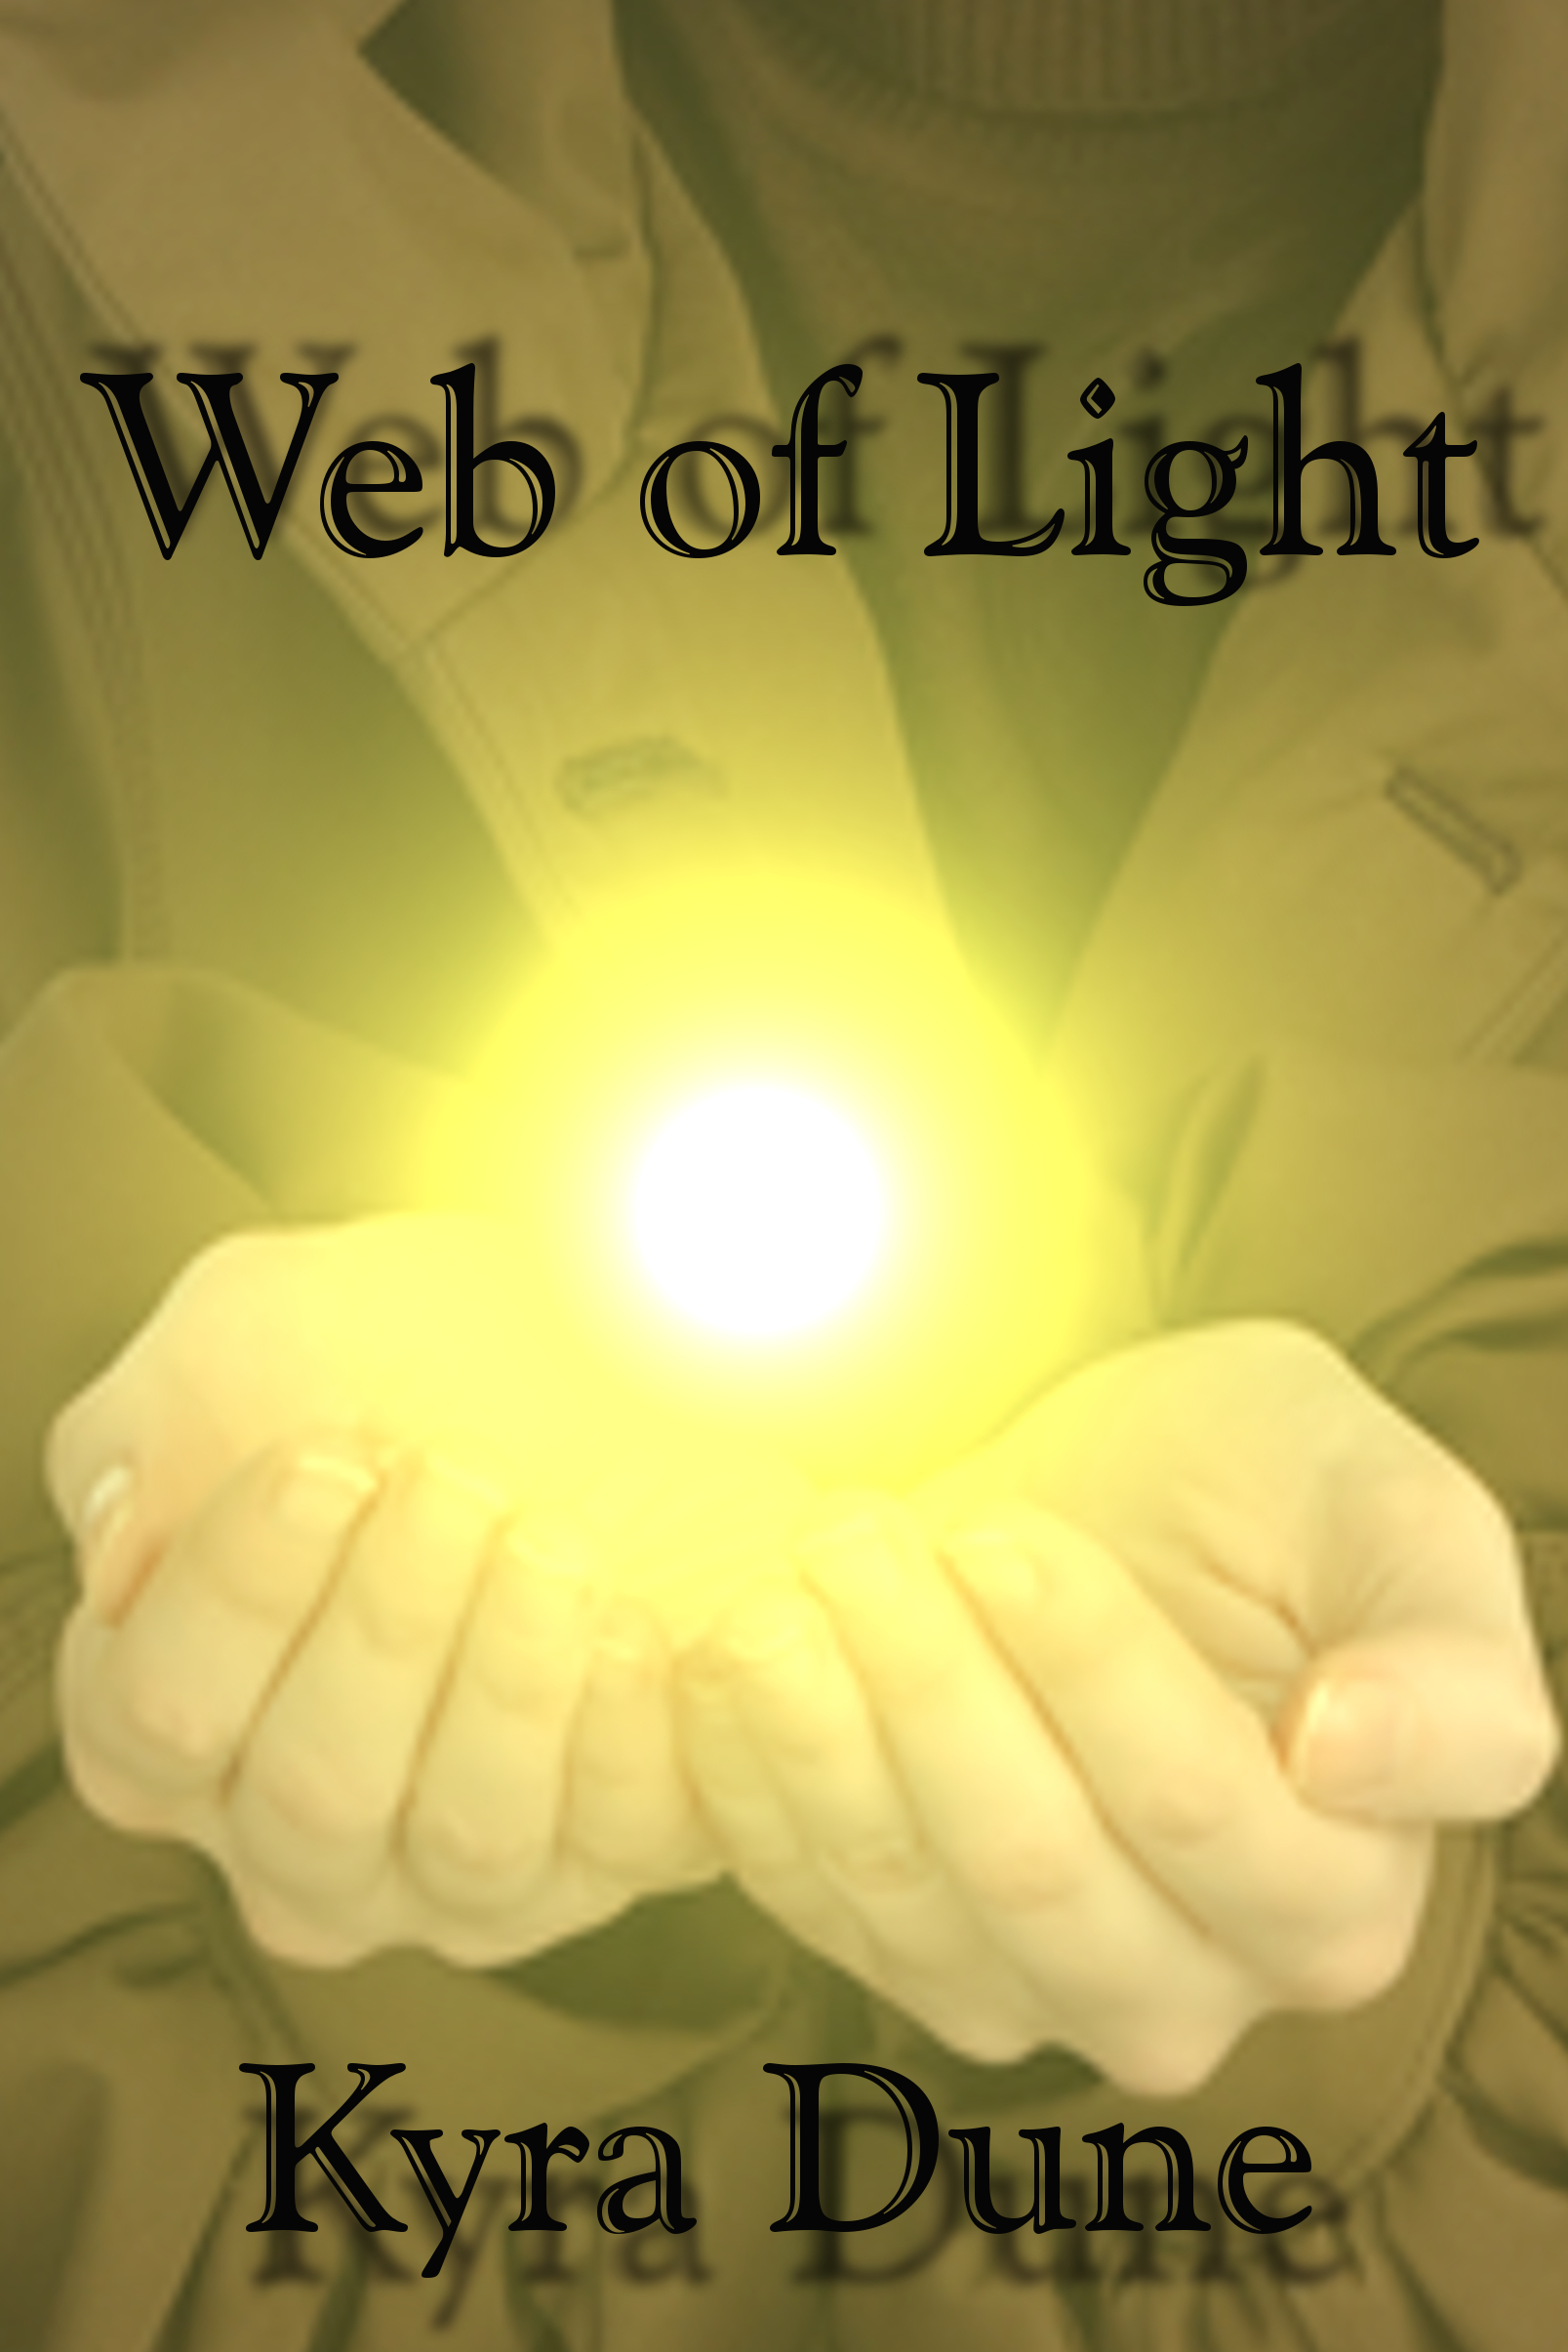 Web of Light by Kyra Dune #ASMSG